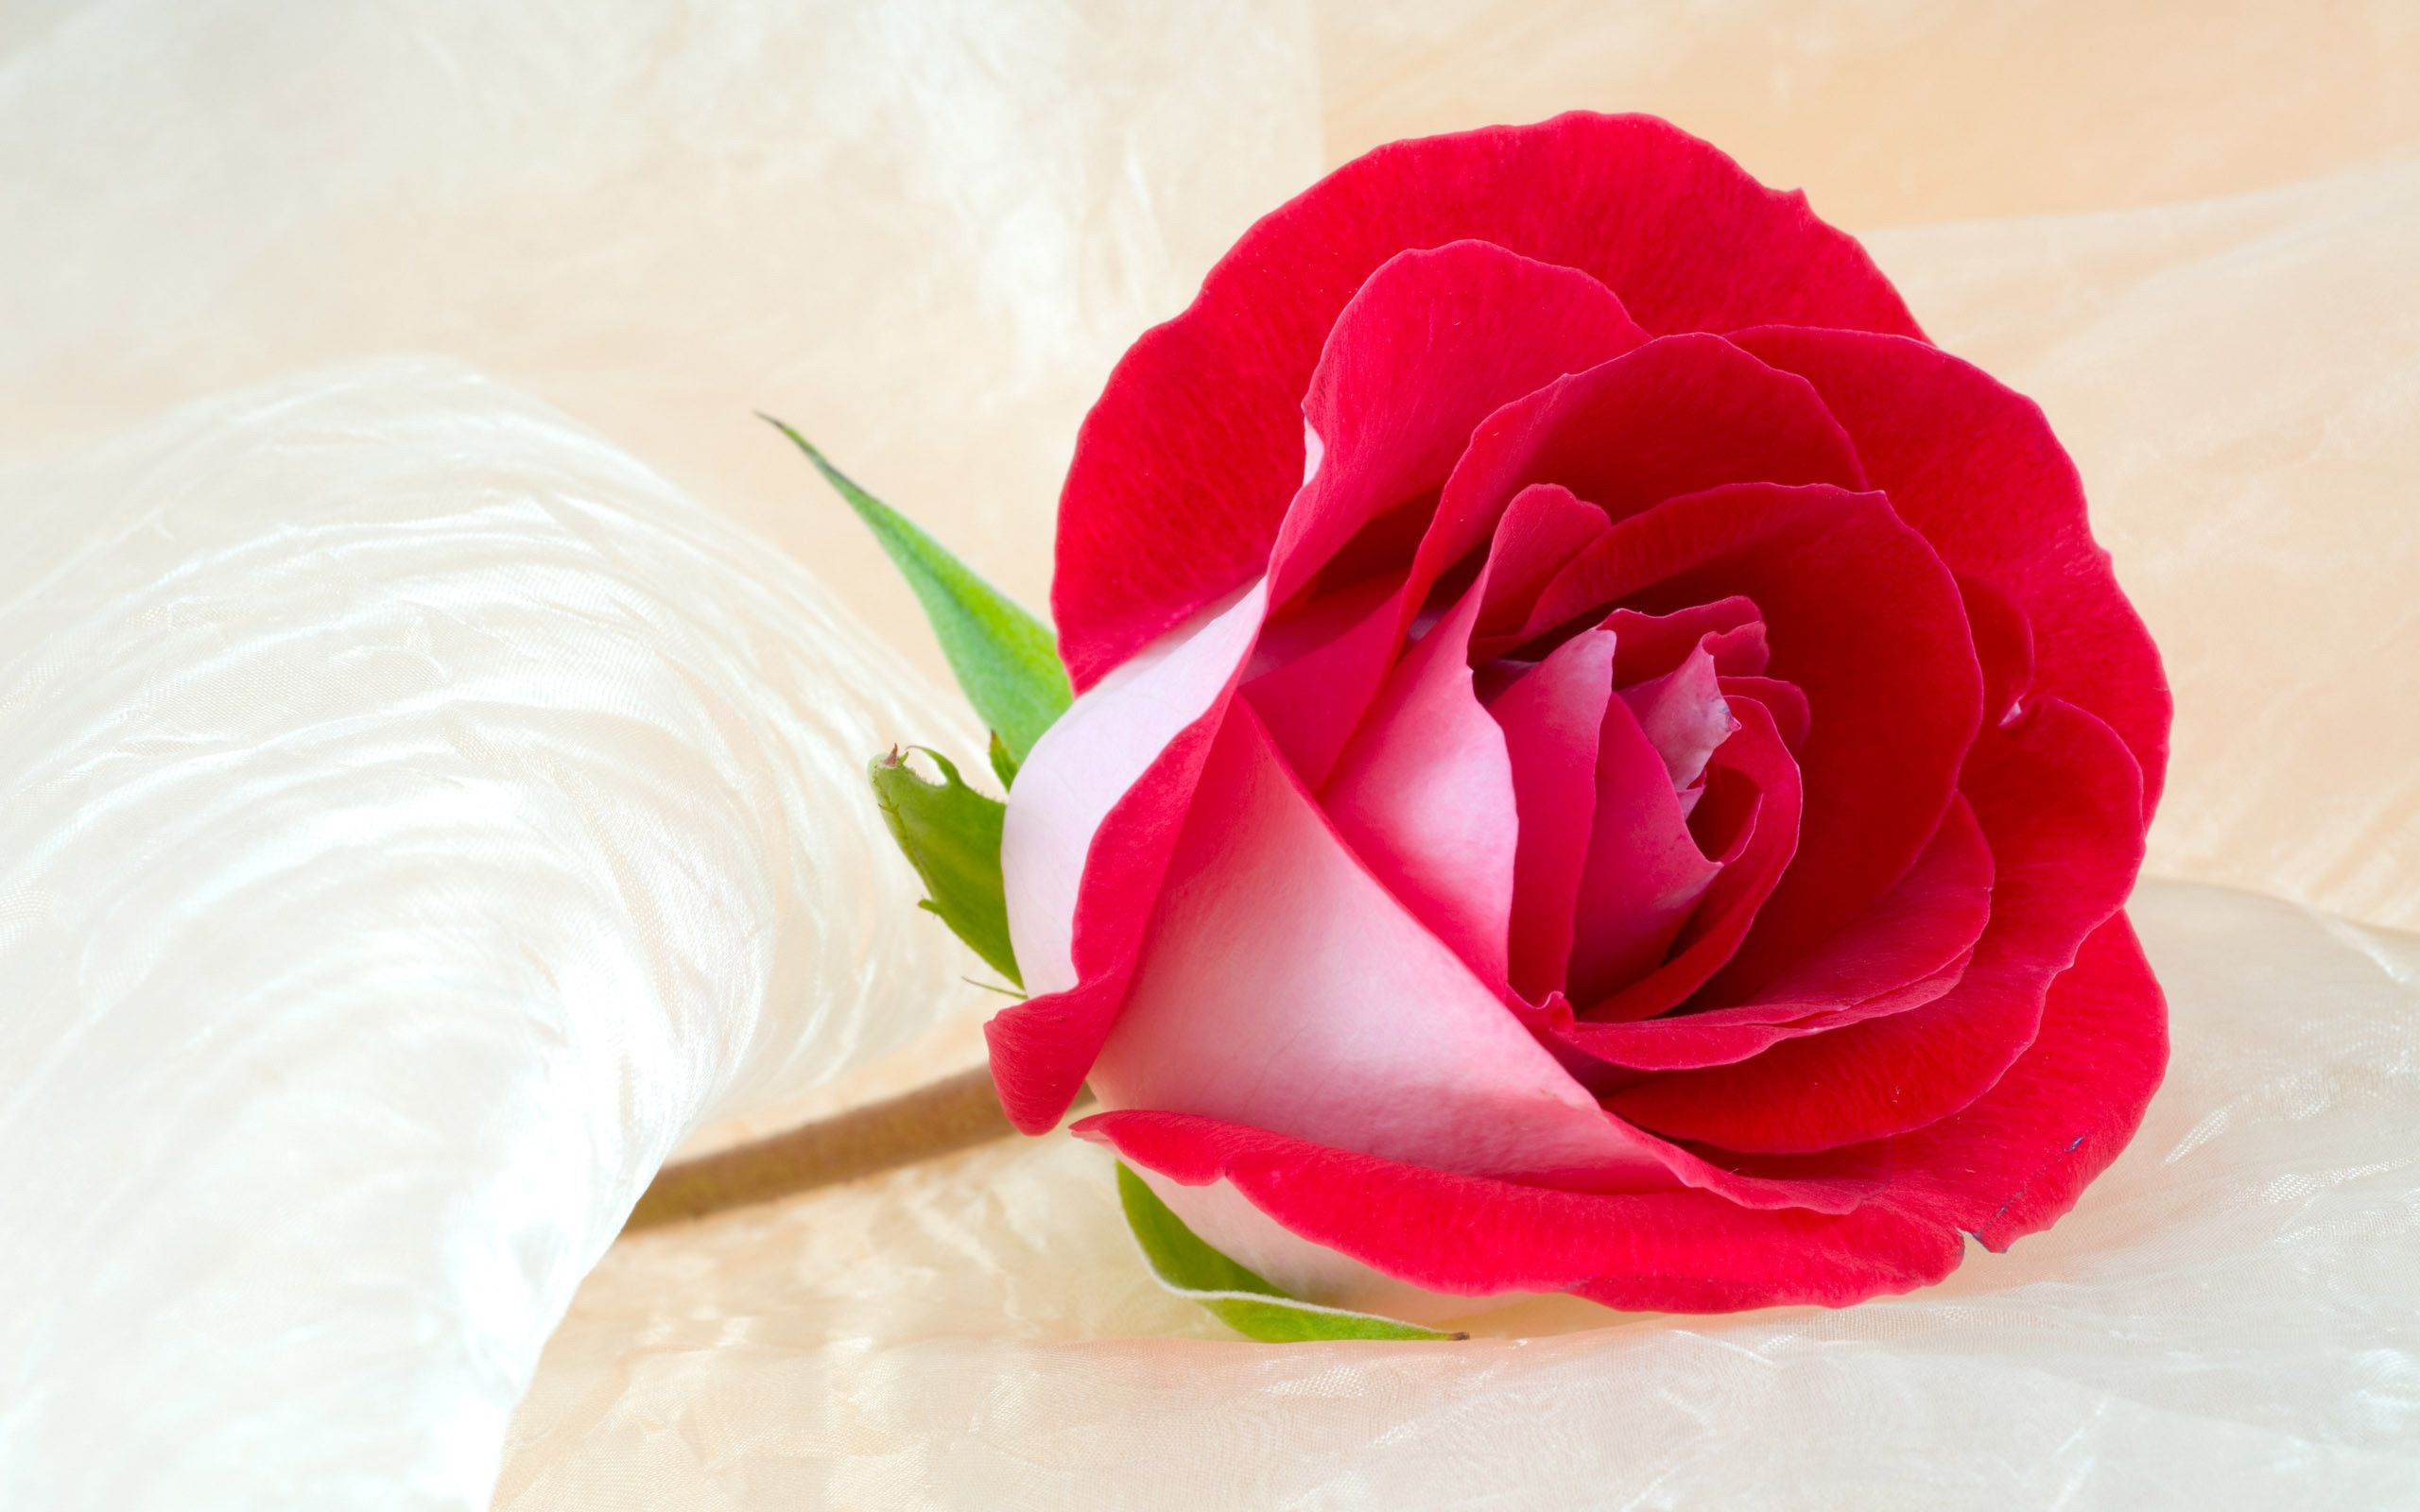 Hd wallpaper rose - Rose Flowers Wallpaper Android Apps On Google Play